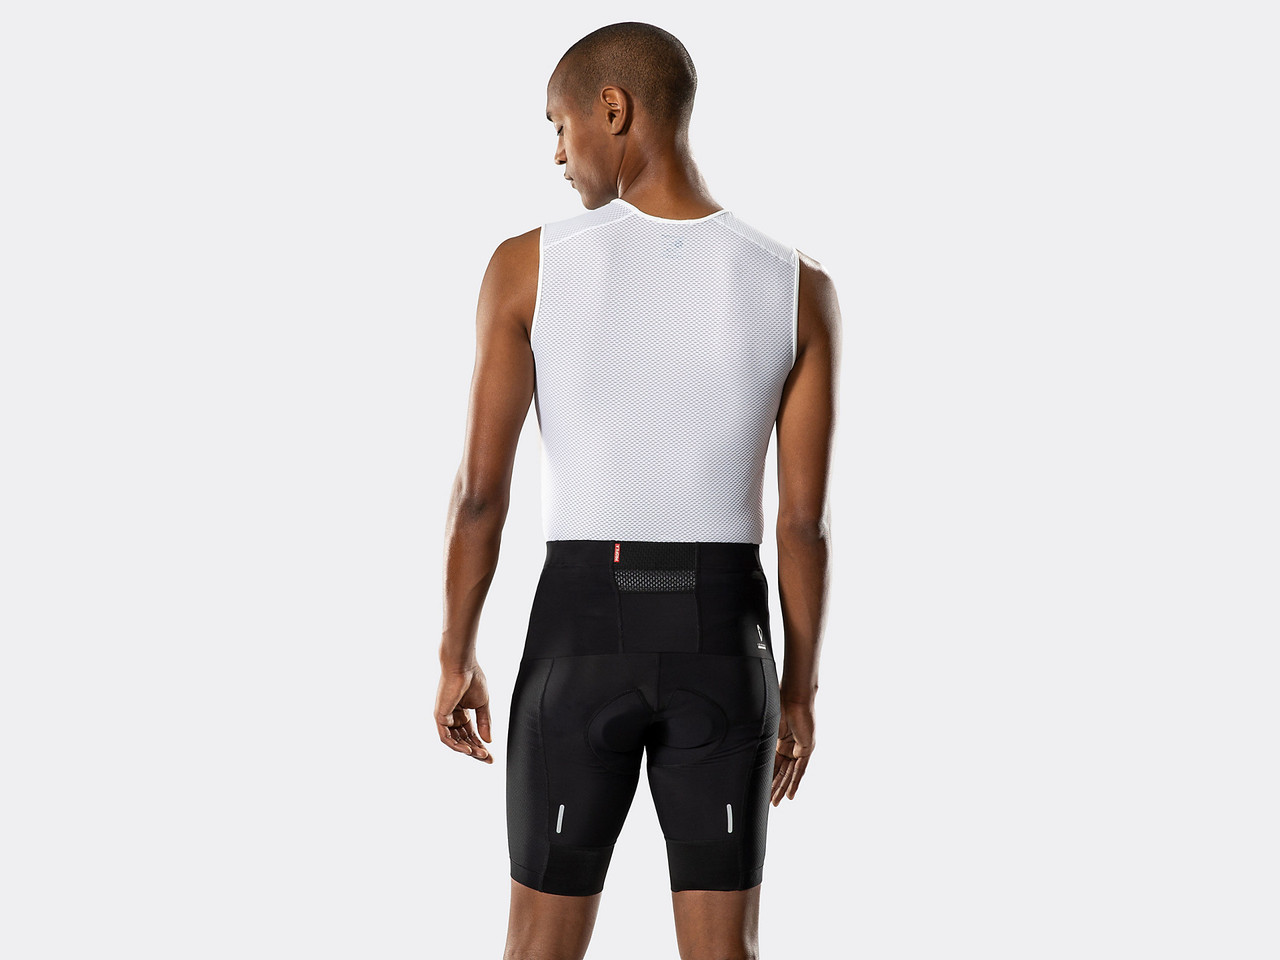 Bontrager Mesh Sleeveless Cycling Base Layer